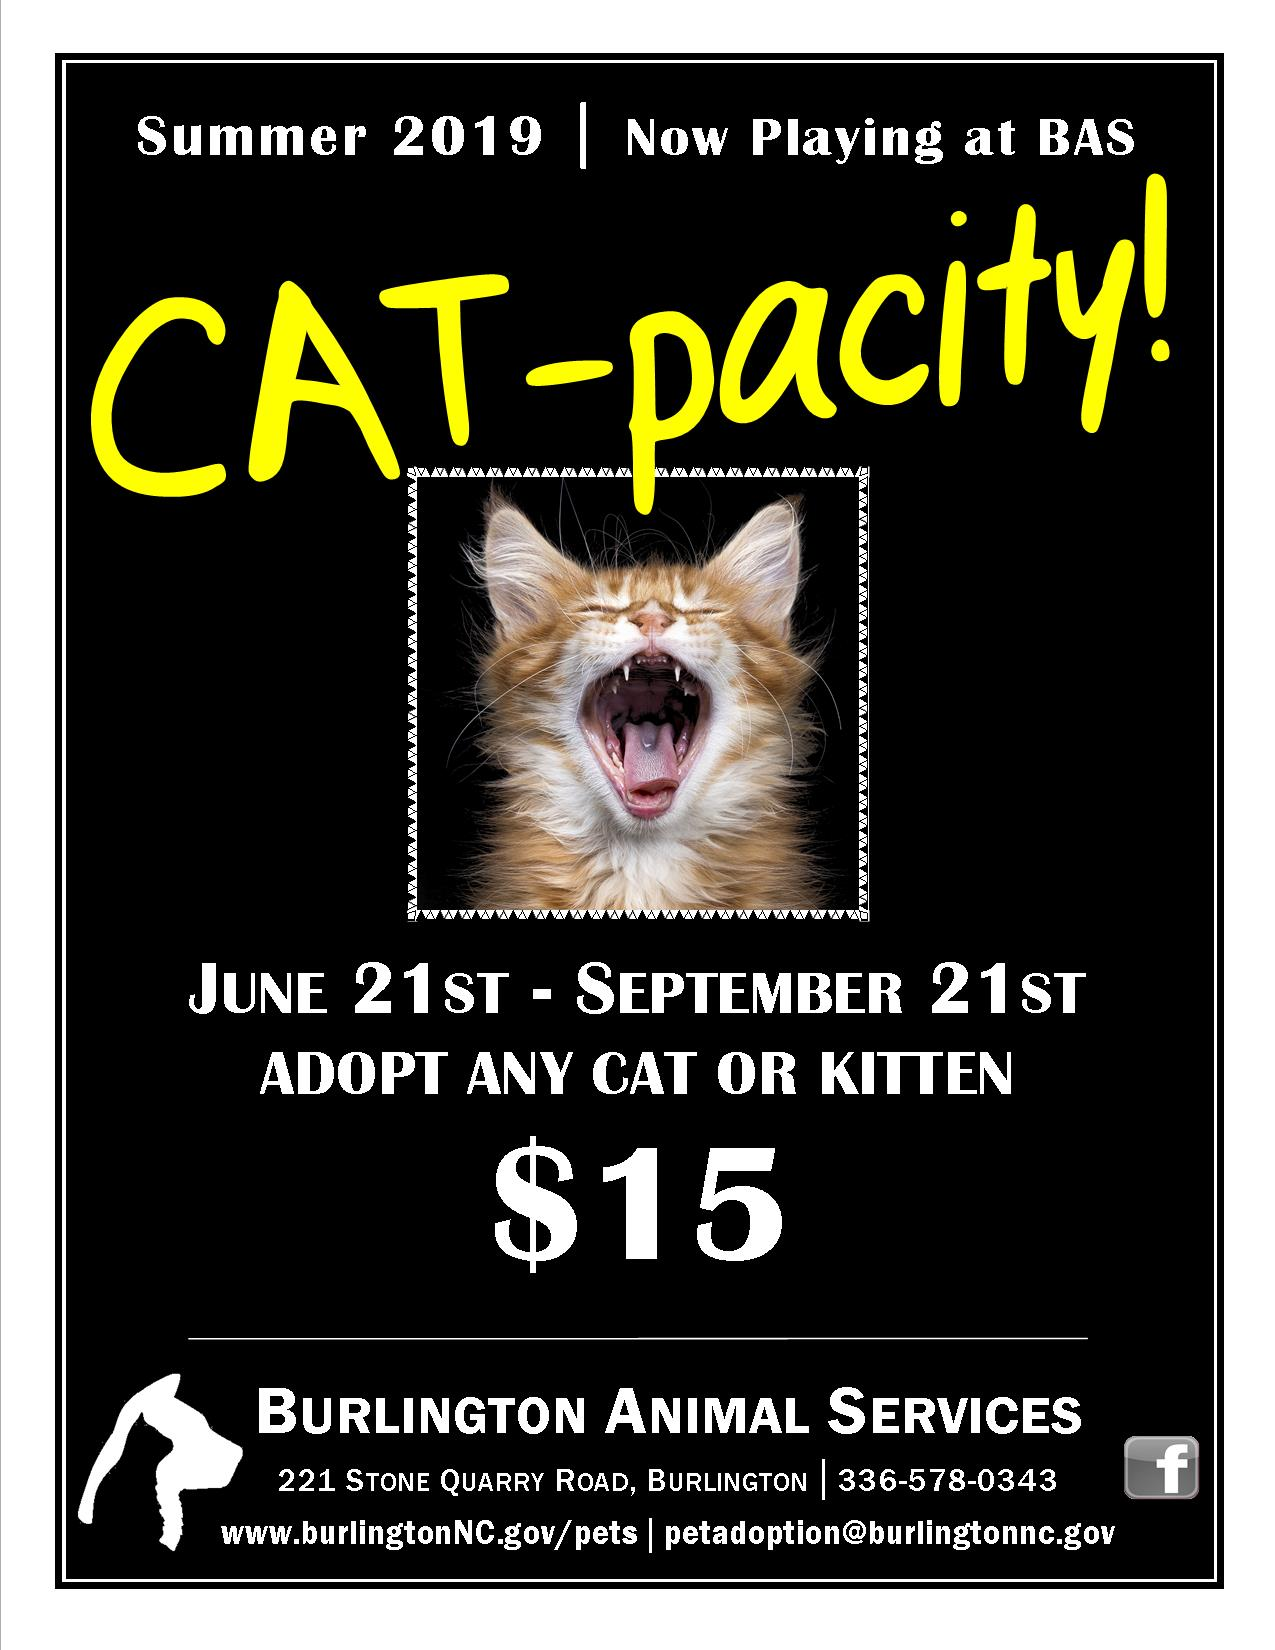 Summer of Cat-pacity 2019